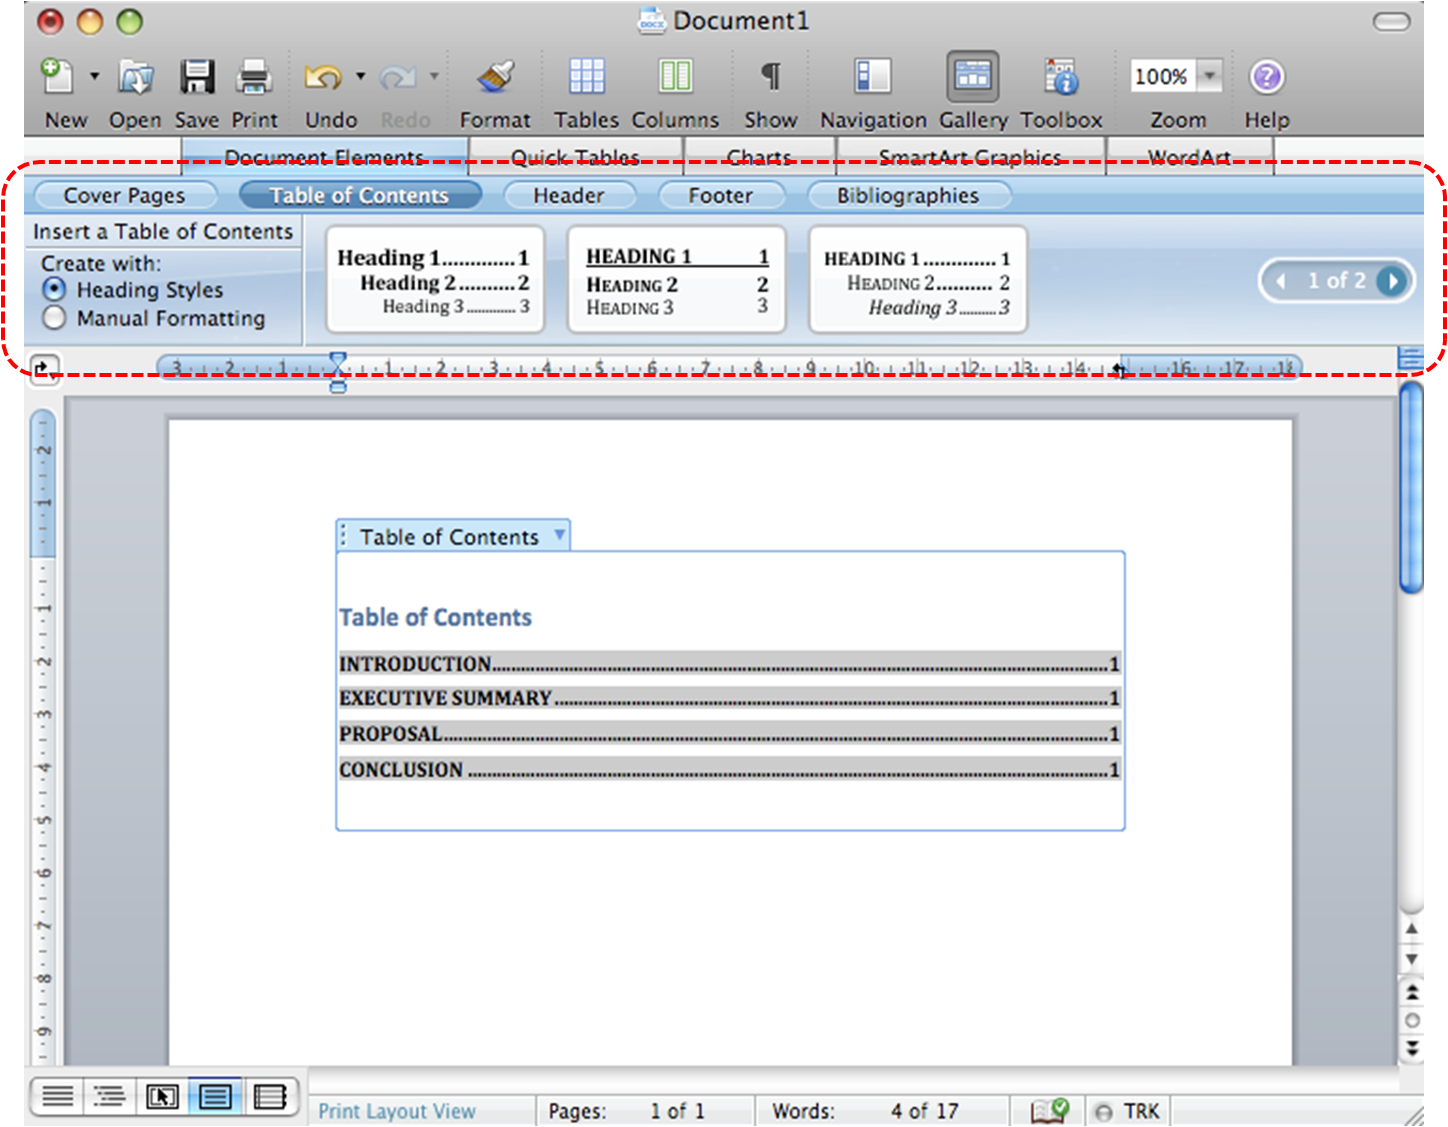 Image demonstrates location of Table of Contents section above the document pane in the application window.